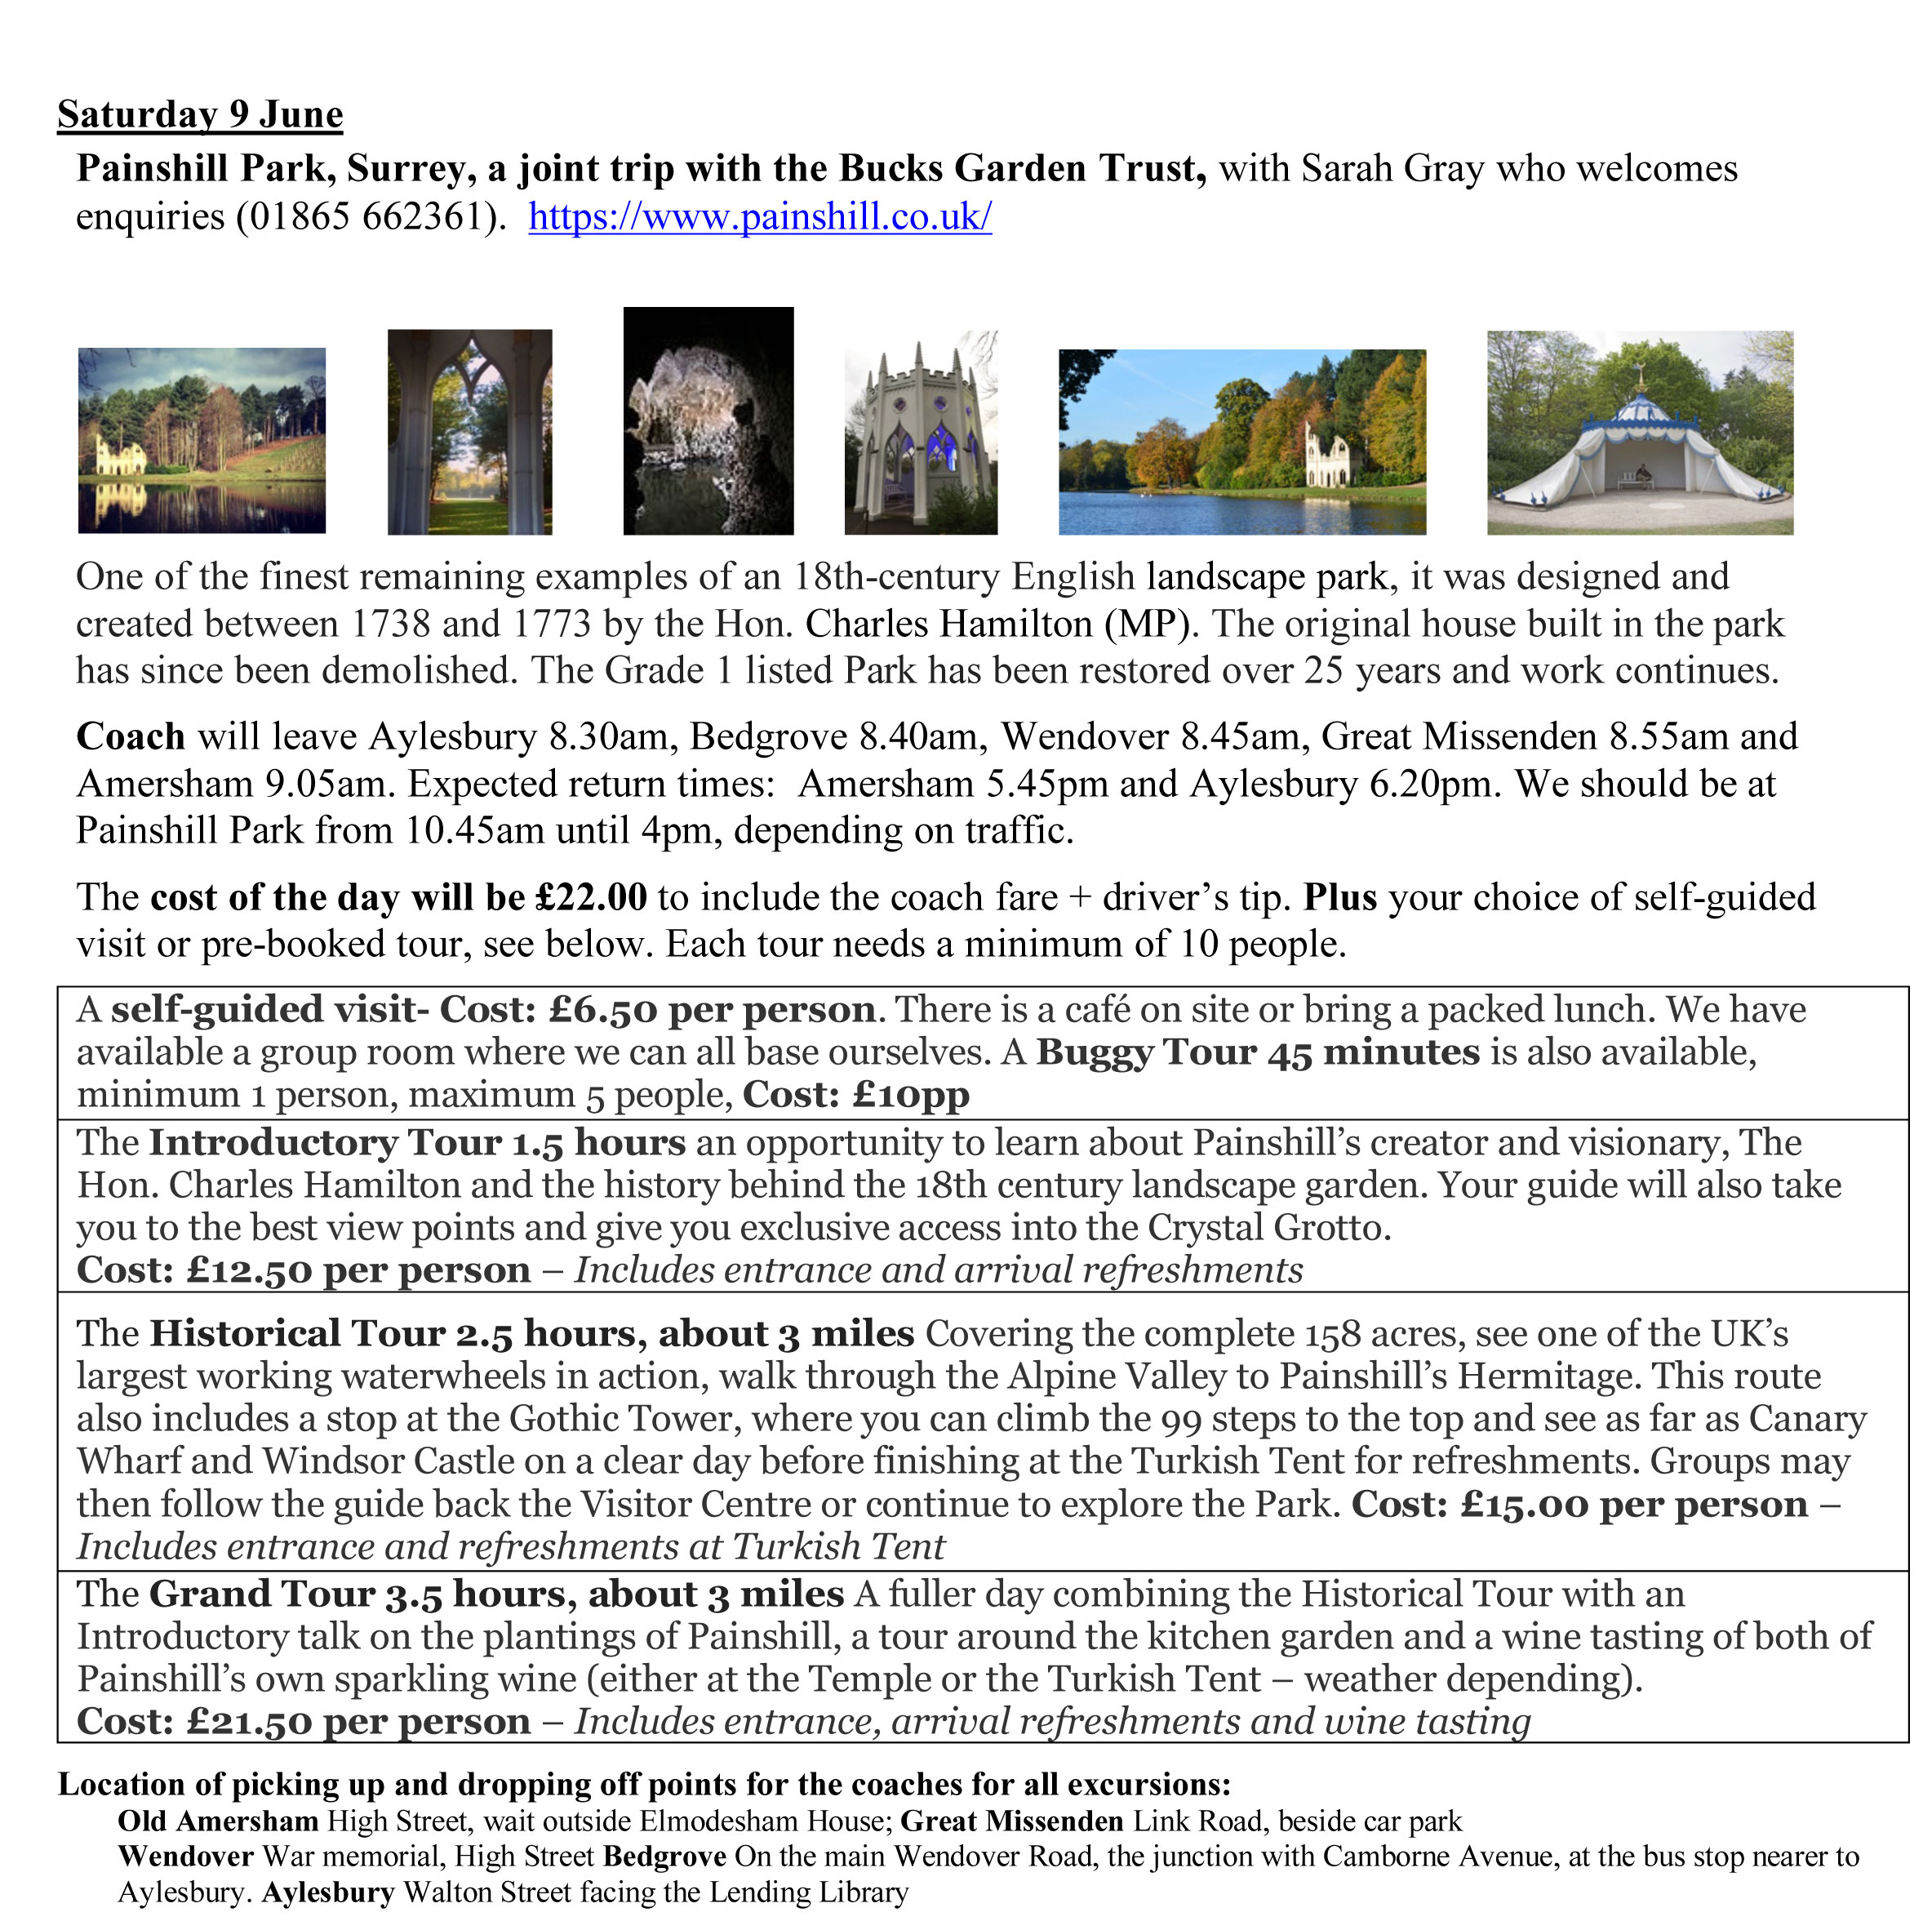 Painshill outing details